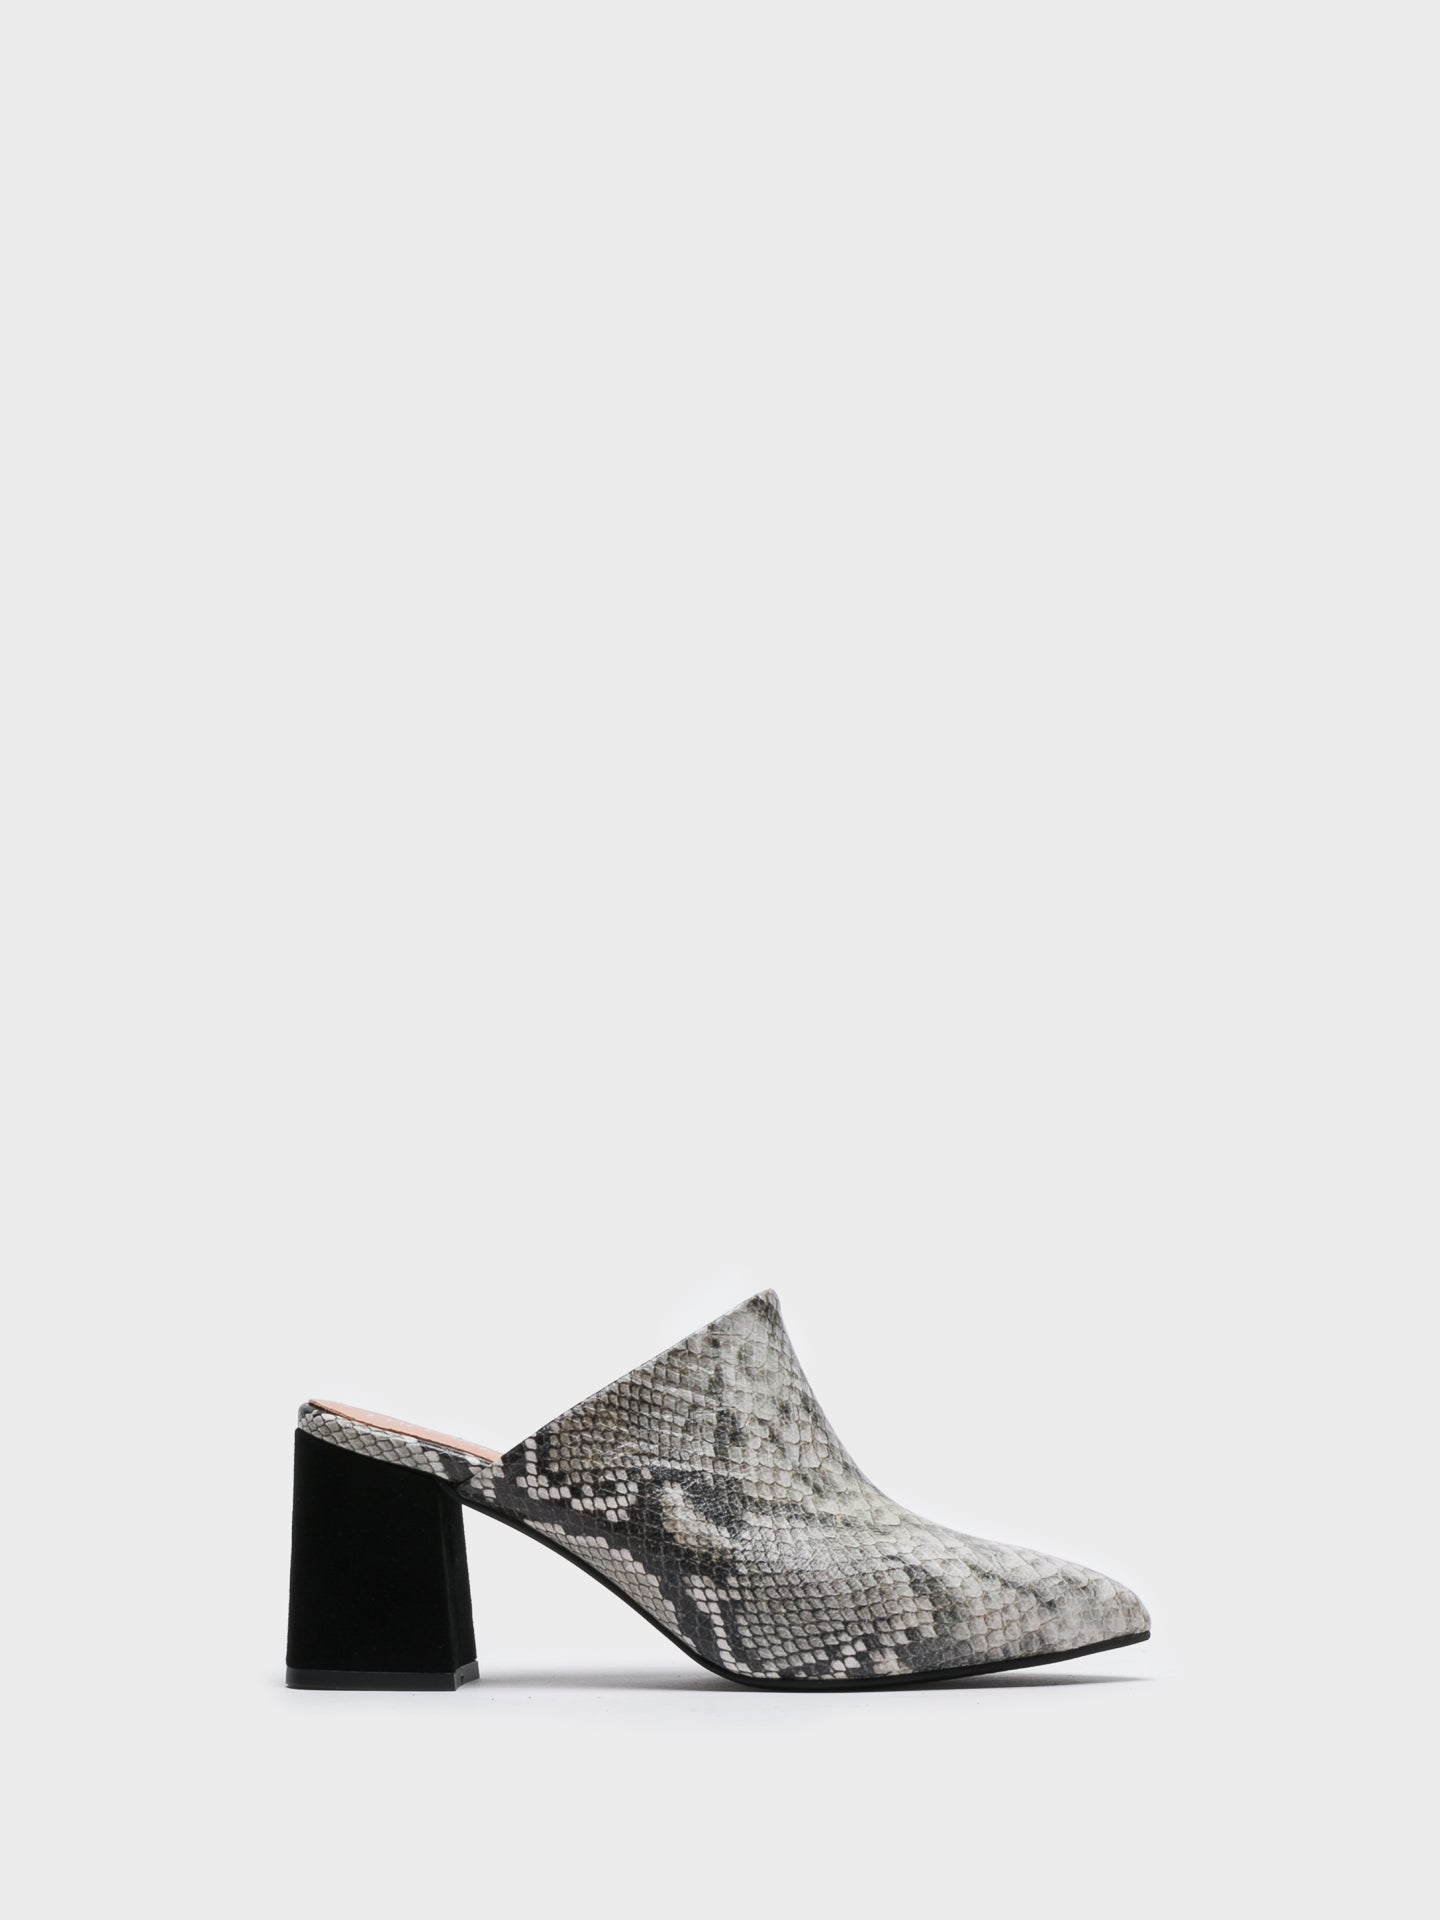 Foreva Gray Pointed Toe Mules